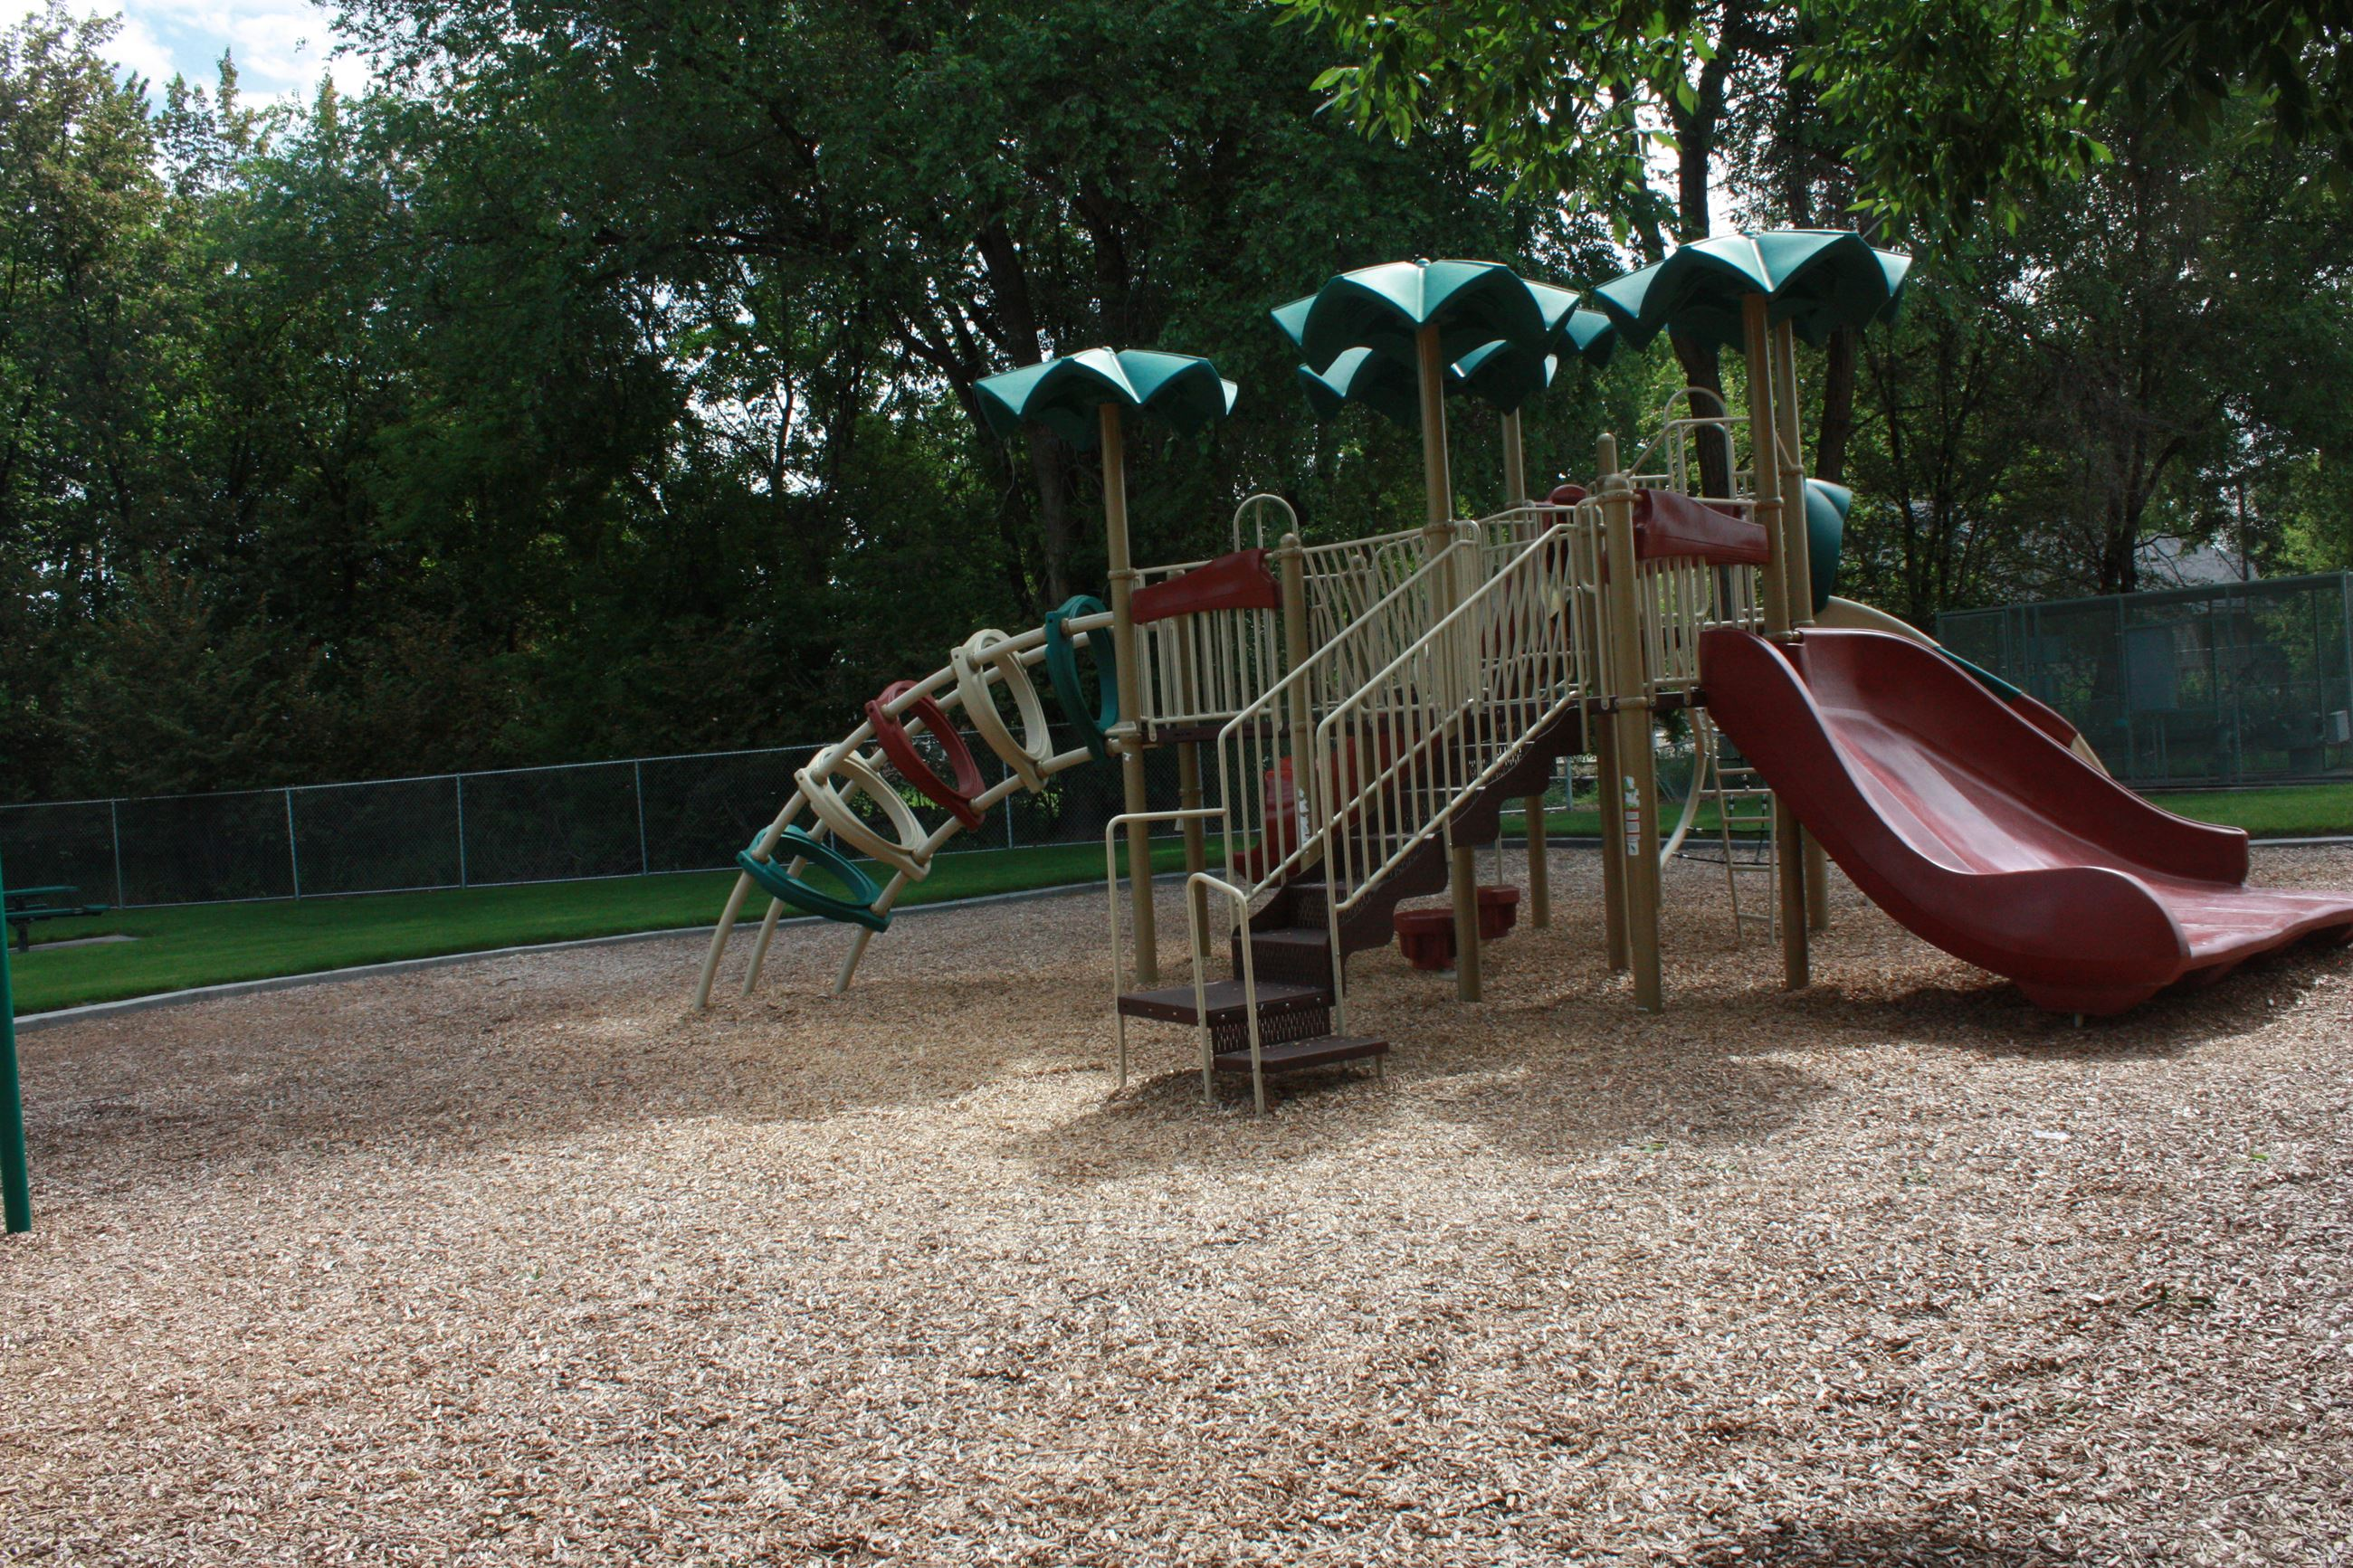 Green, tan, and maroon play structure